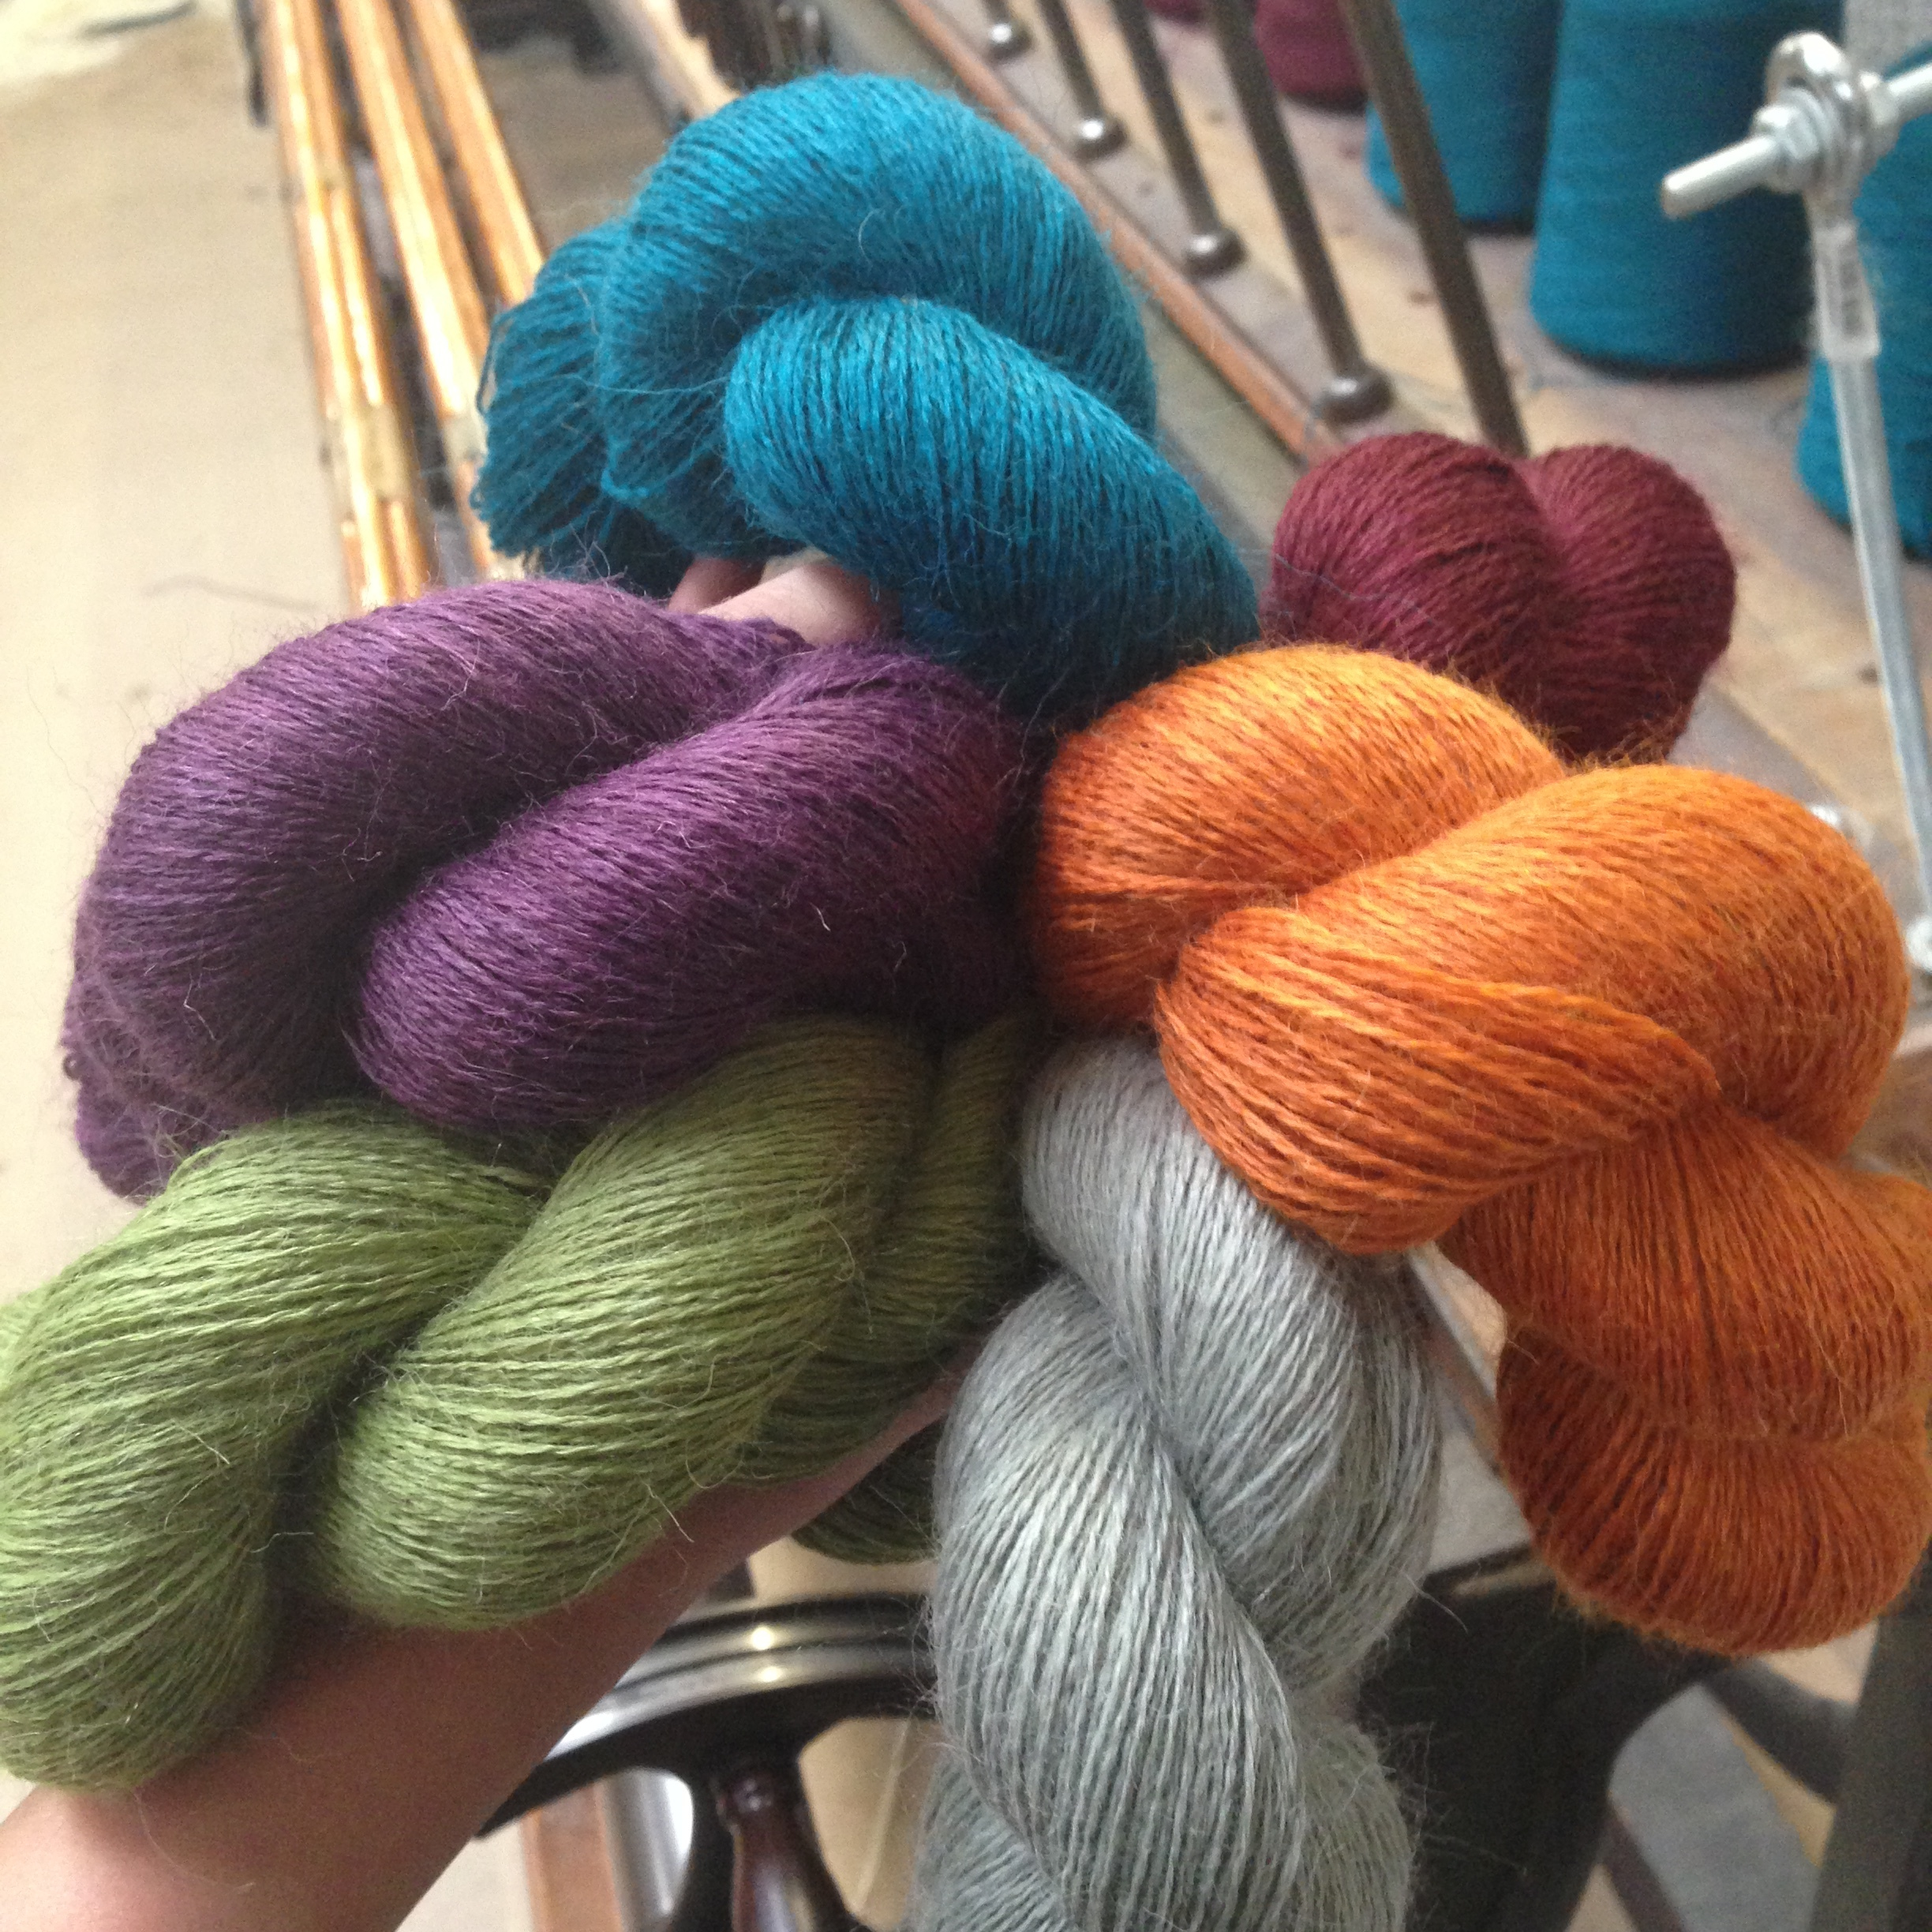 The finished skeins